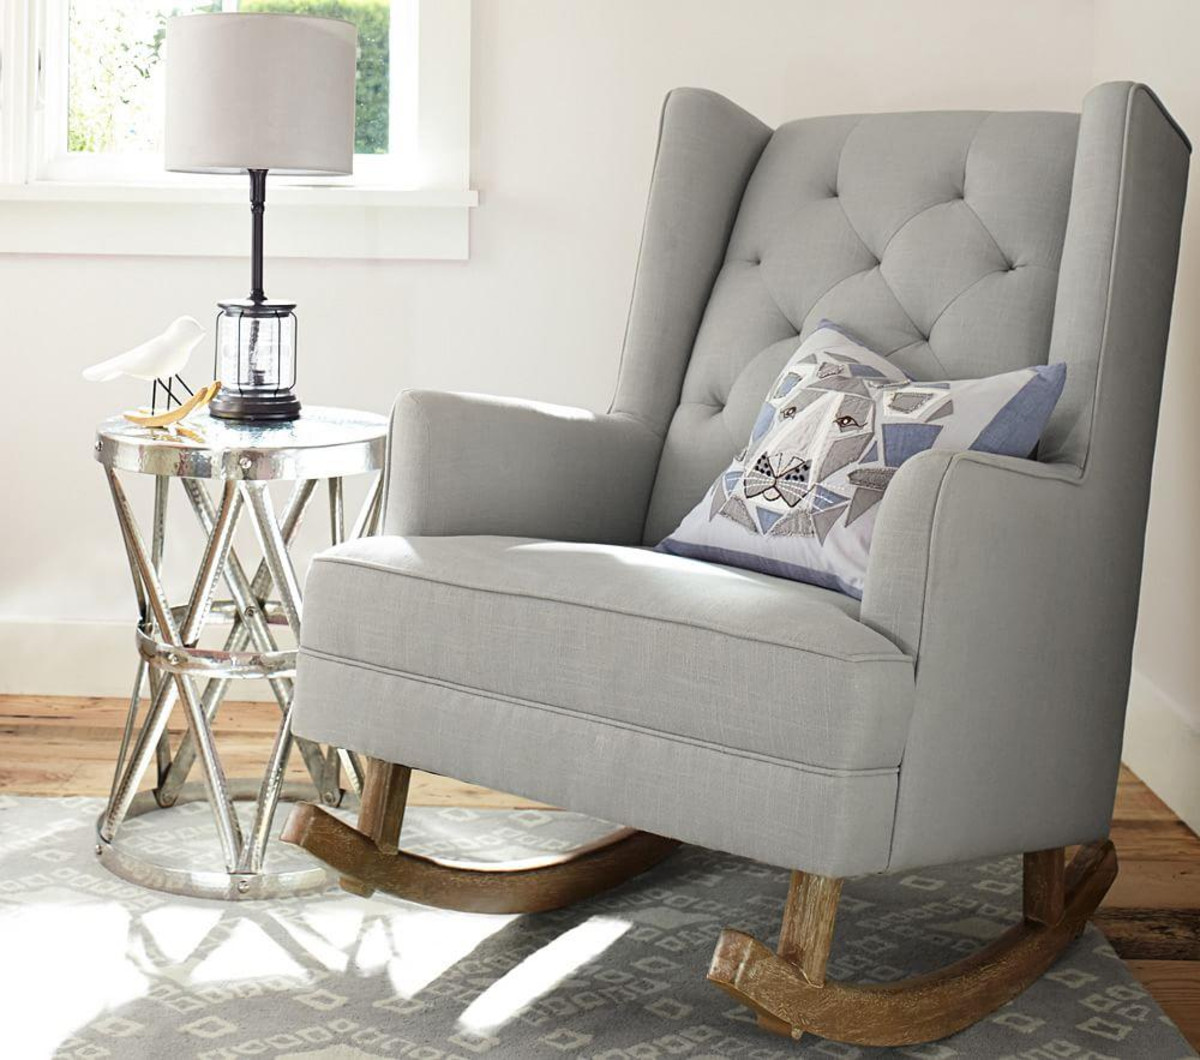 nursery rocking chair cheap rocking chairs for nursery | nursery rocking chairs | rocking chair VMGIPRT